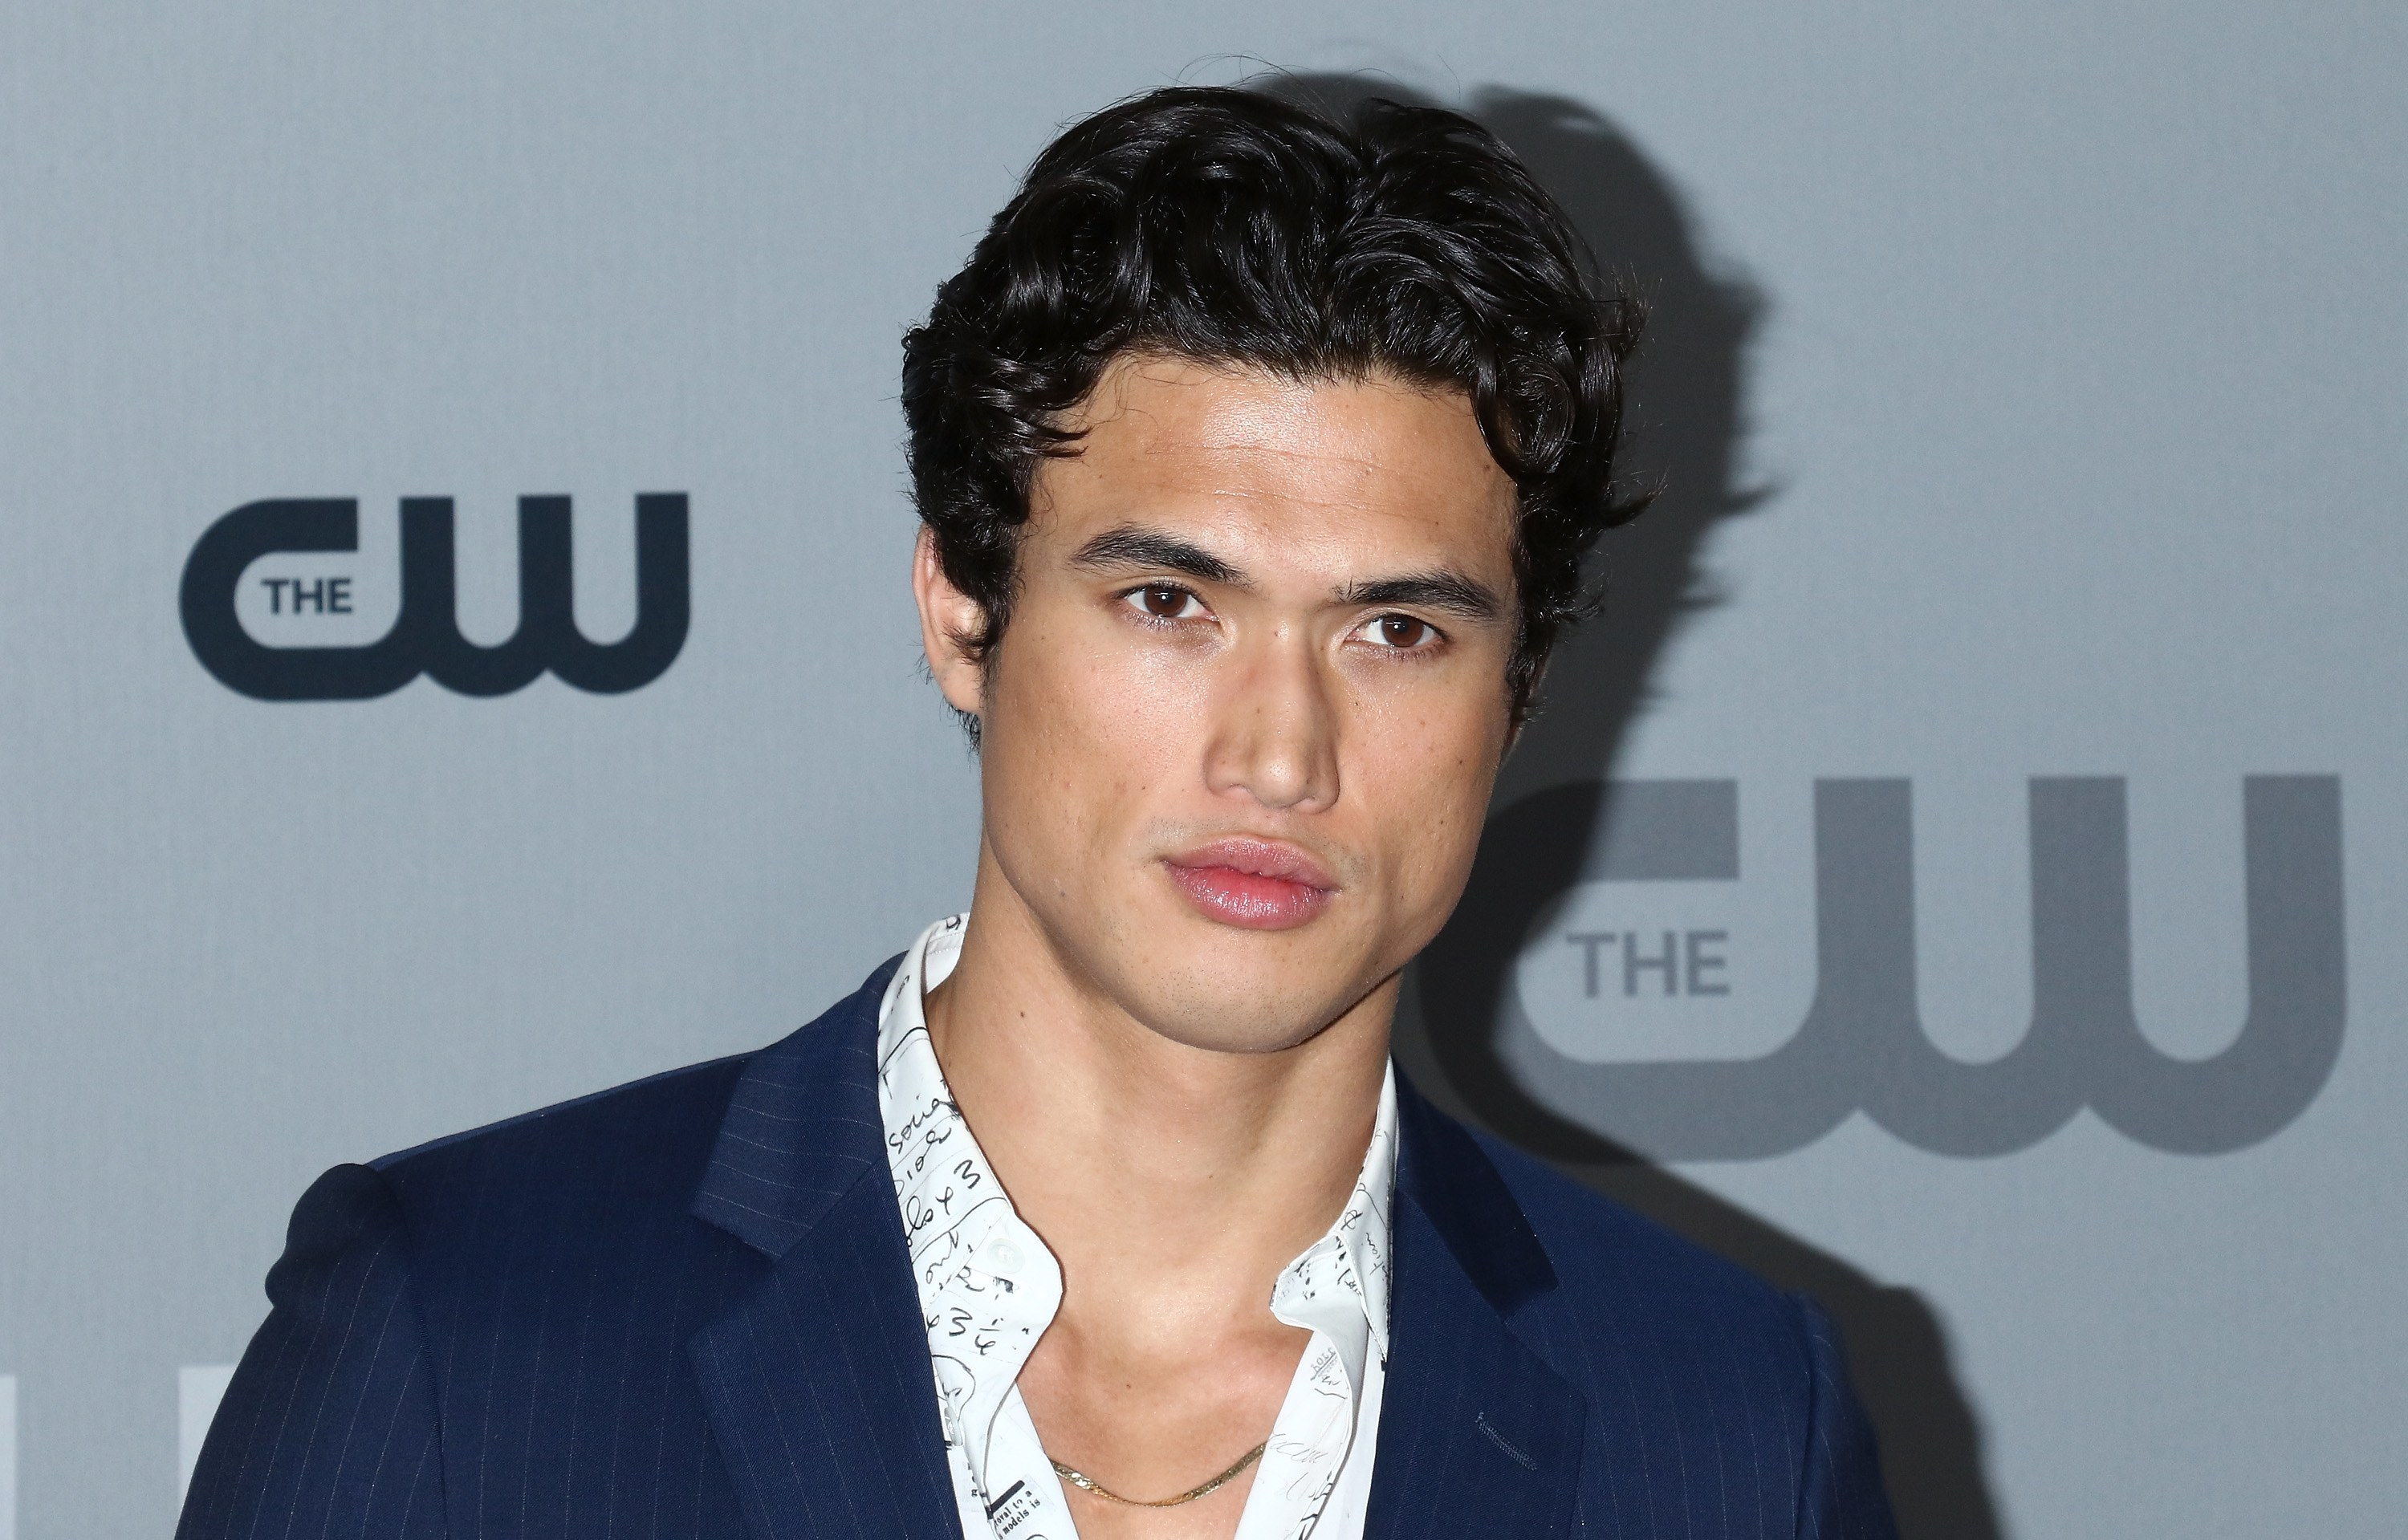 Charles Melton age, Birthday, Height, Net Worth, Family, Salary